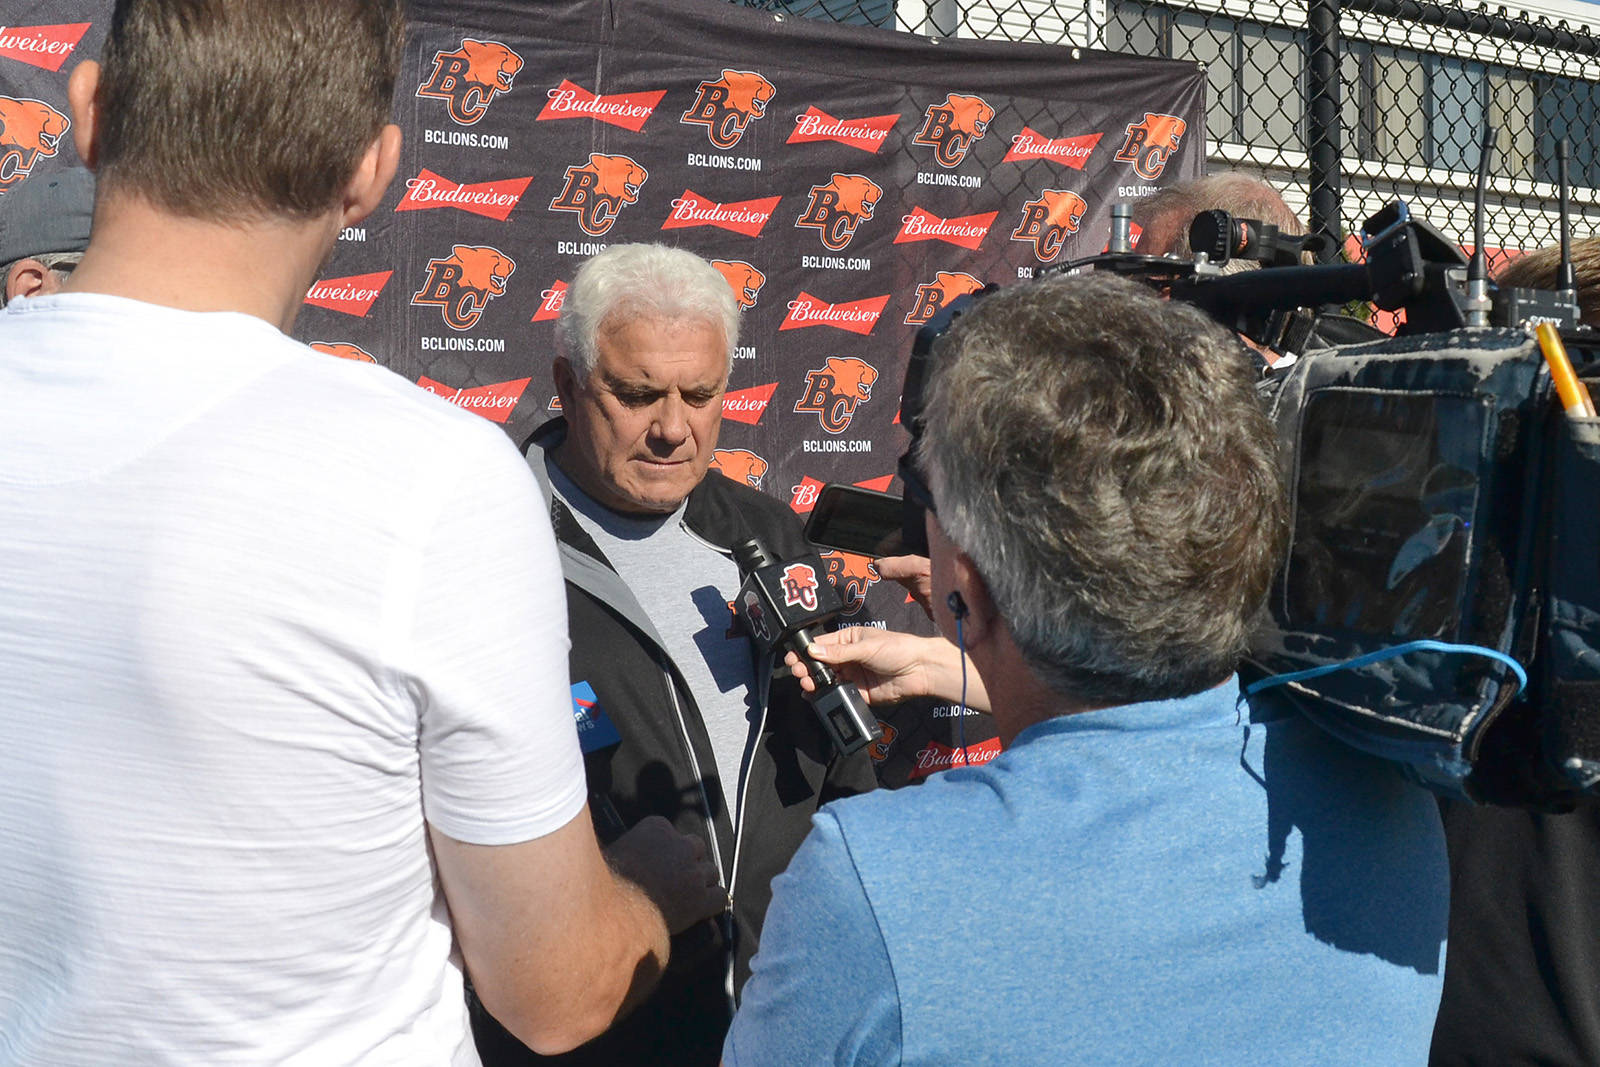 BC Lions coach Wally Buono, a South Surrey resident, speaks with the media after a practice earlier this month at the team's training facility. (Nick Greenizan photo)